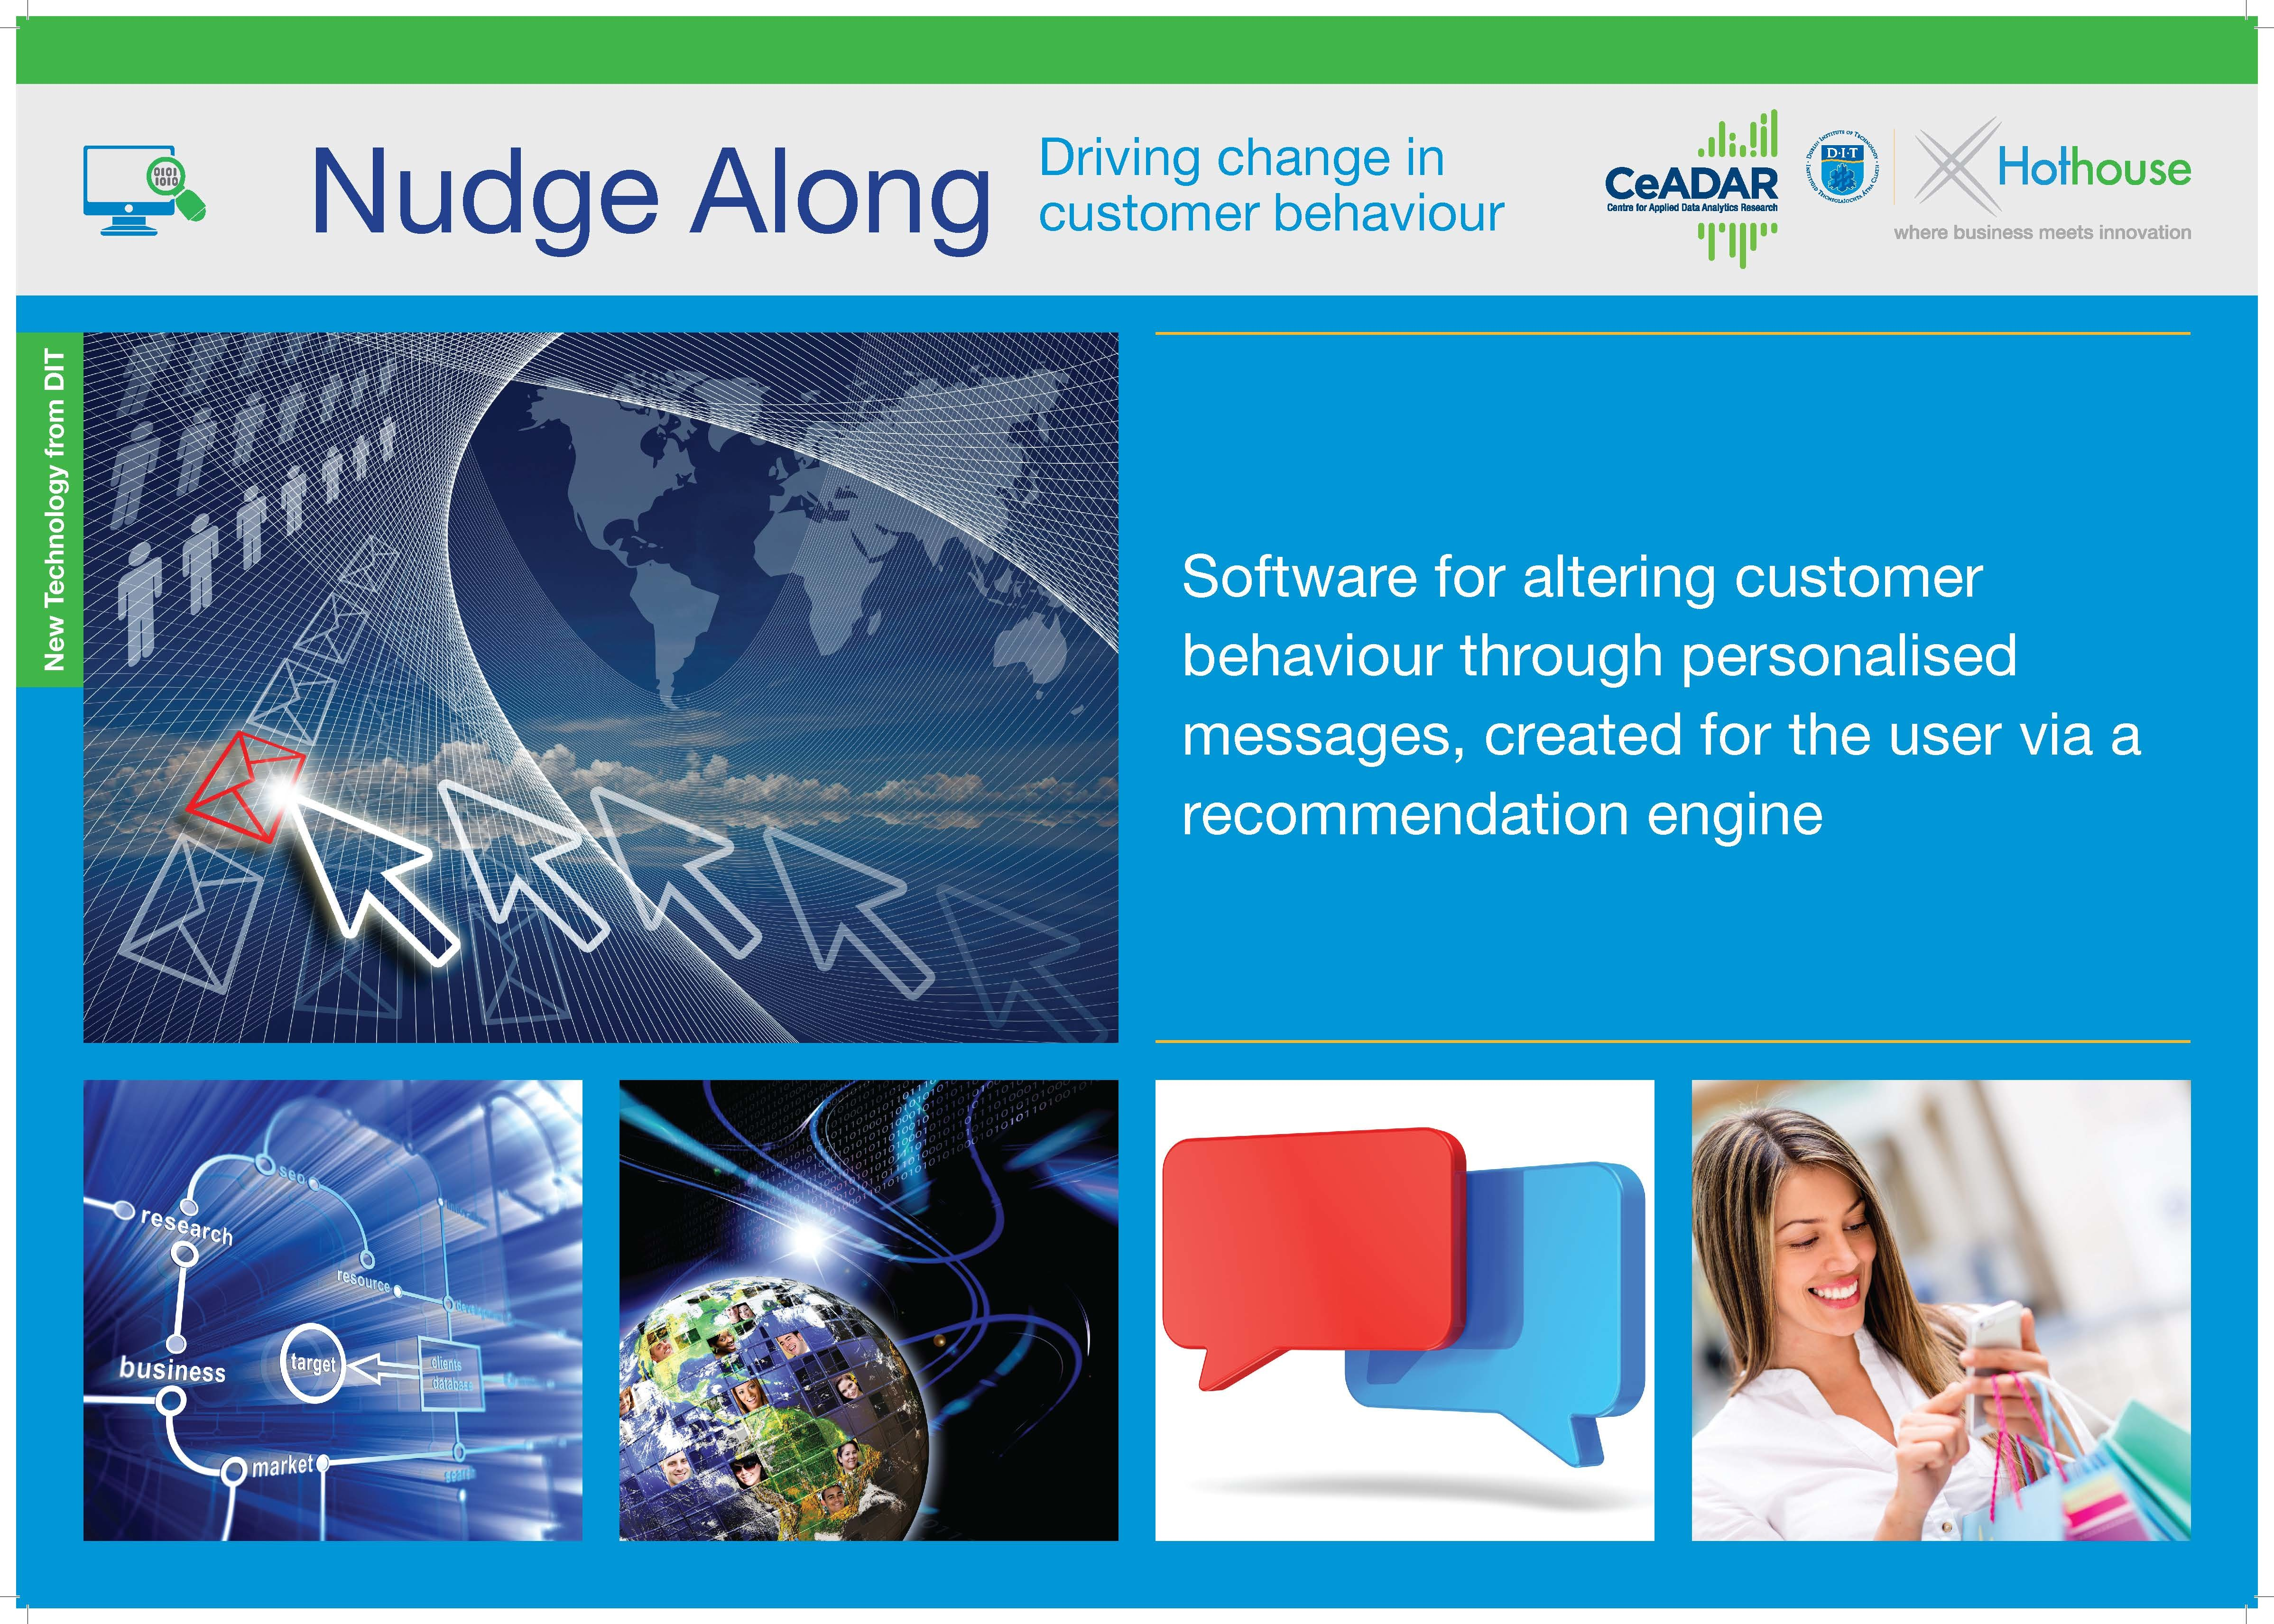 Nudge Along: A software model for driving change in customer behaviour